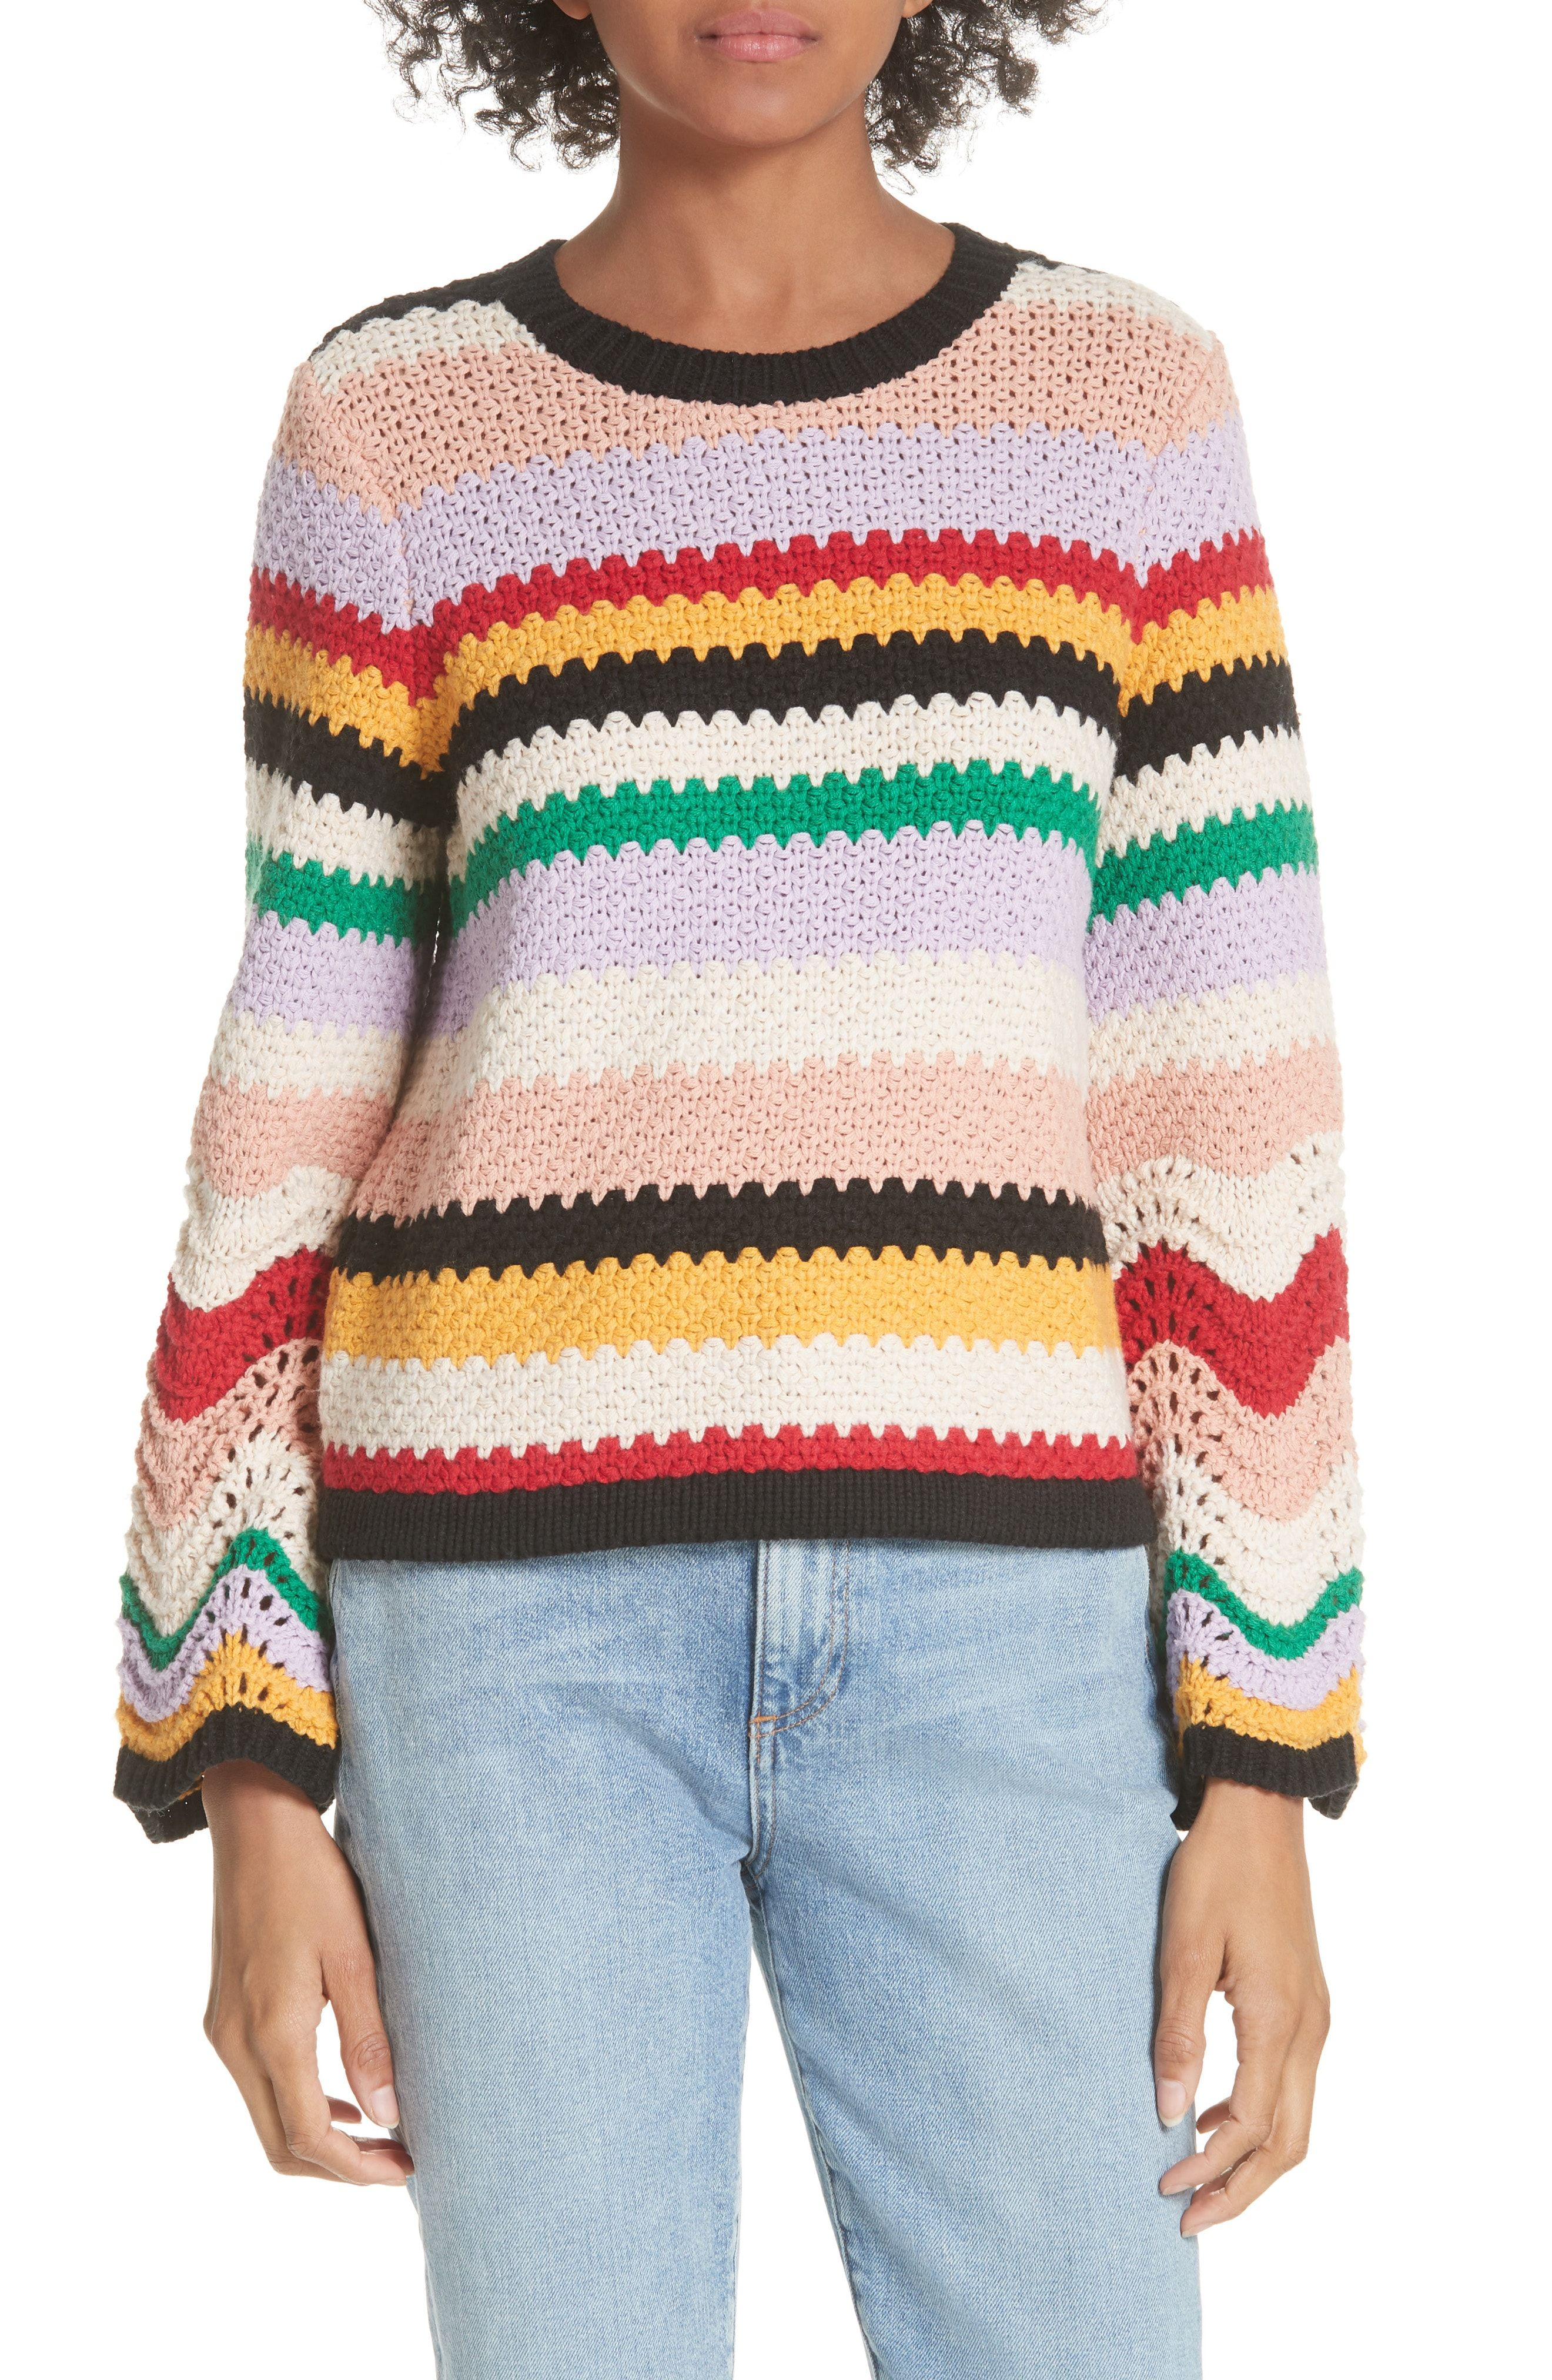 634168a22 How cute is this crocheted looking colorful sweater from Nordstrom ...